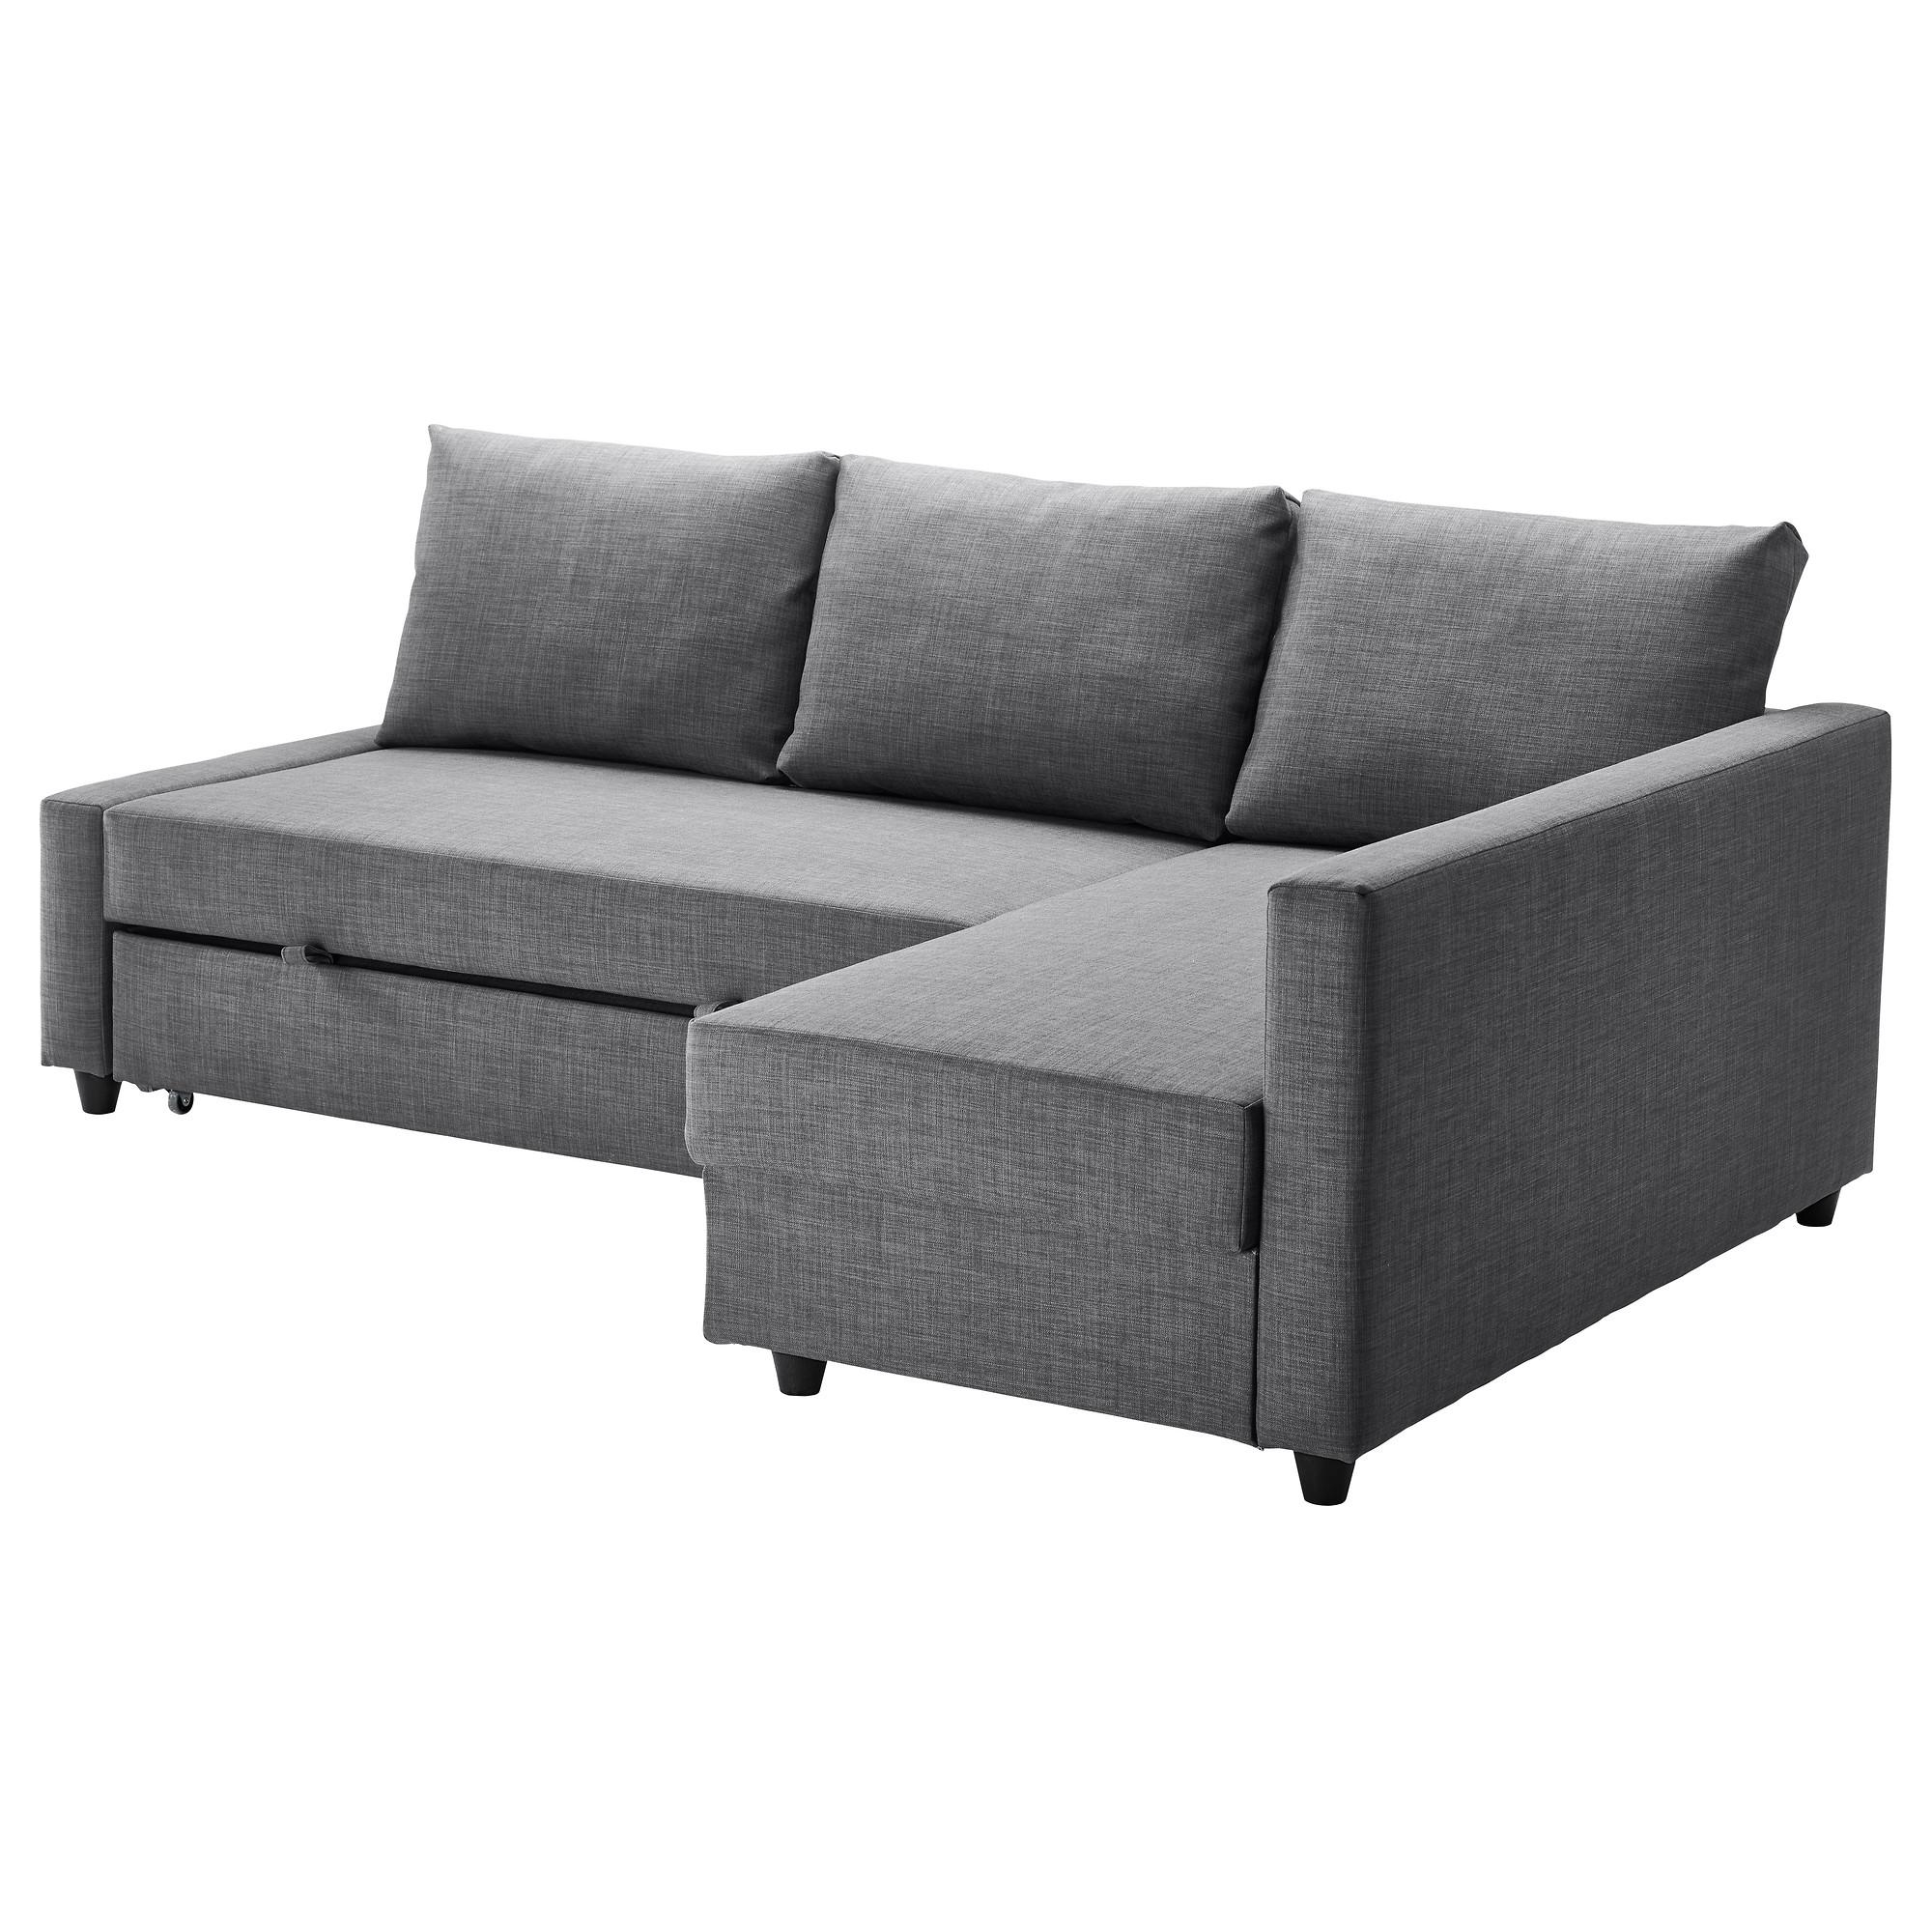 Friheten Corner Sofa Bed With Storage Skiftebo Dark Grey – Ikea Regarding Cheap Corner Sofa Beds (View 19 of 20)